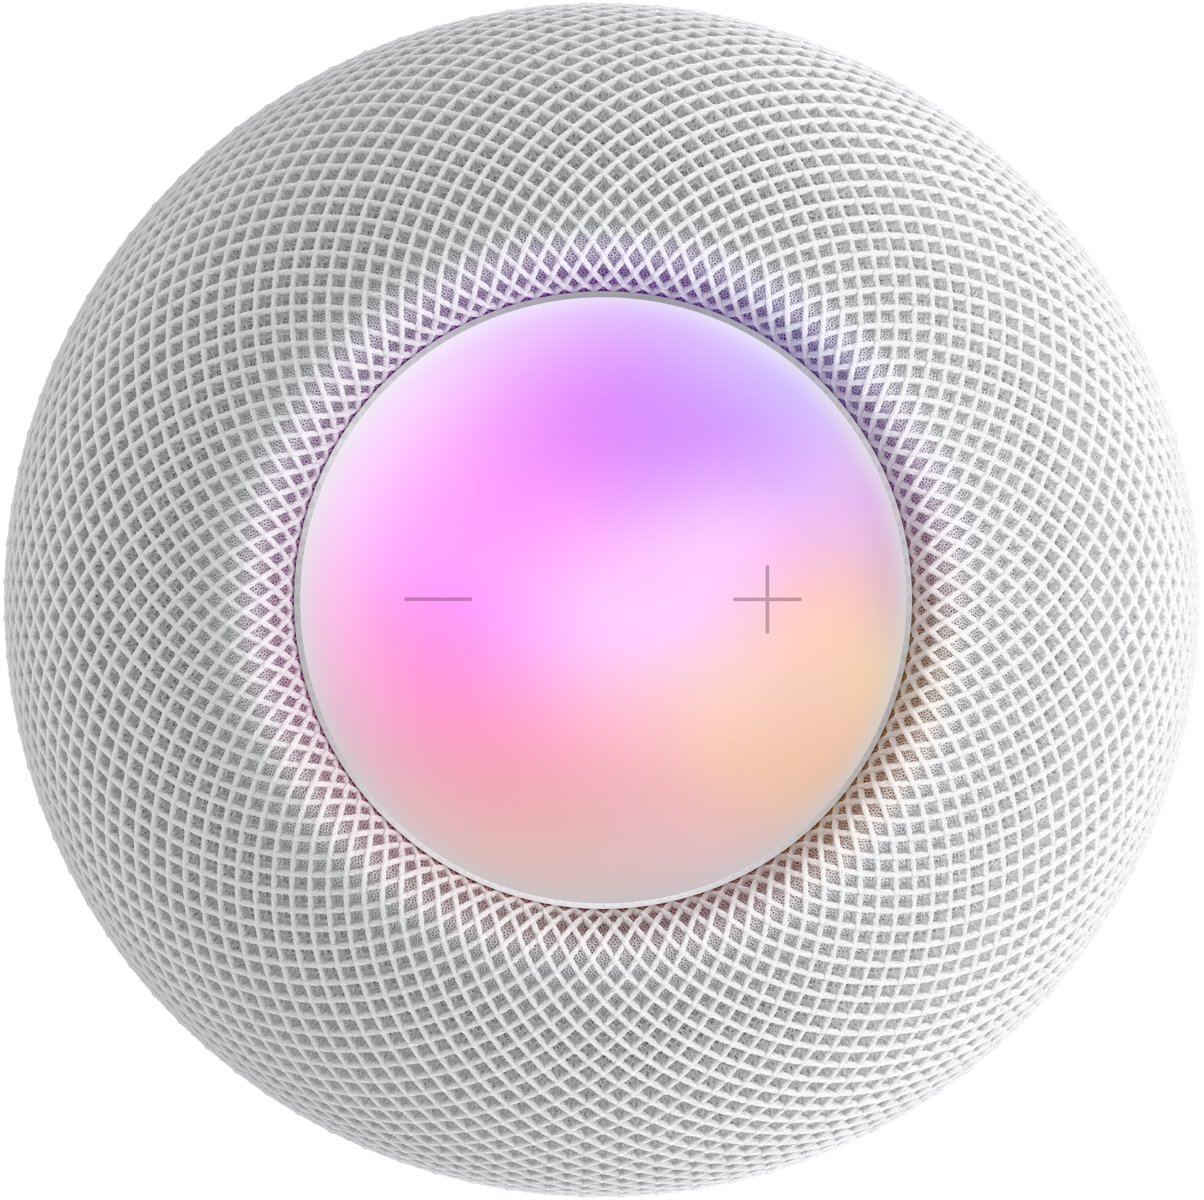 White HomePod mini top view with plus and minus volume controls and a colourful display under them.